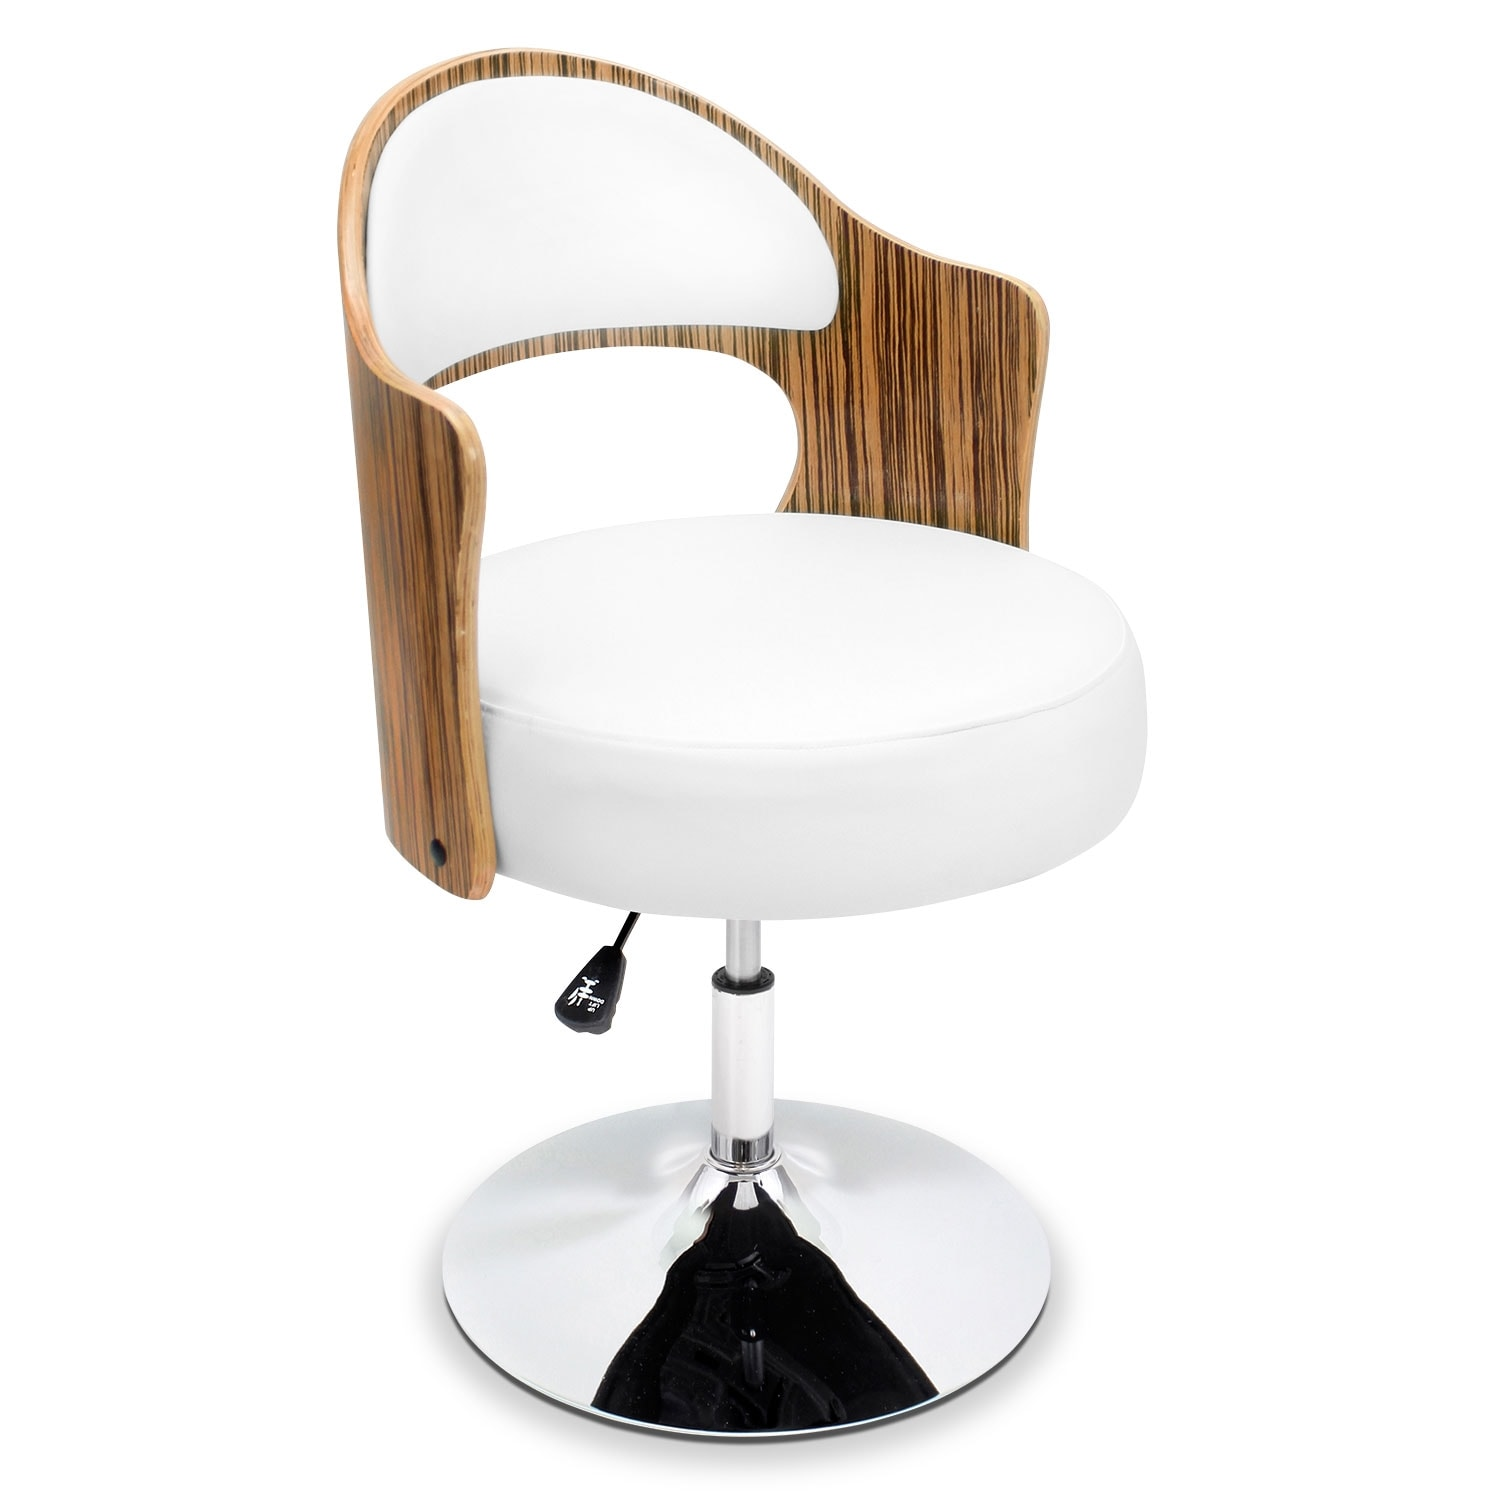 Park Accent Chair - White